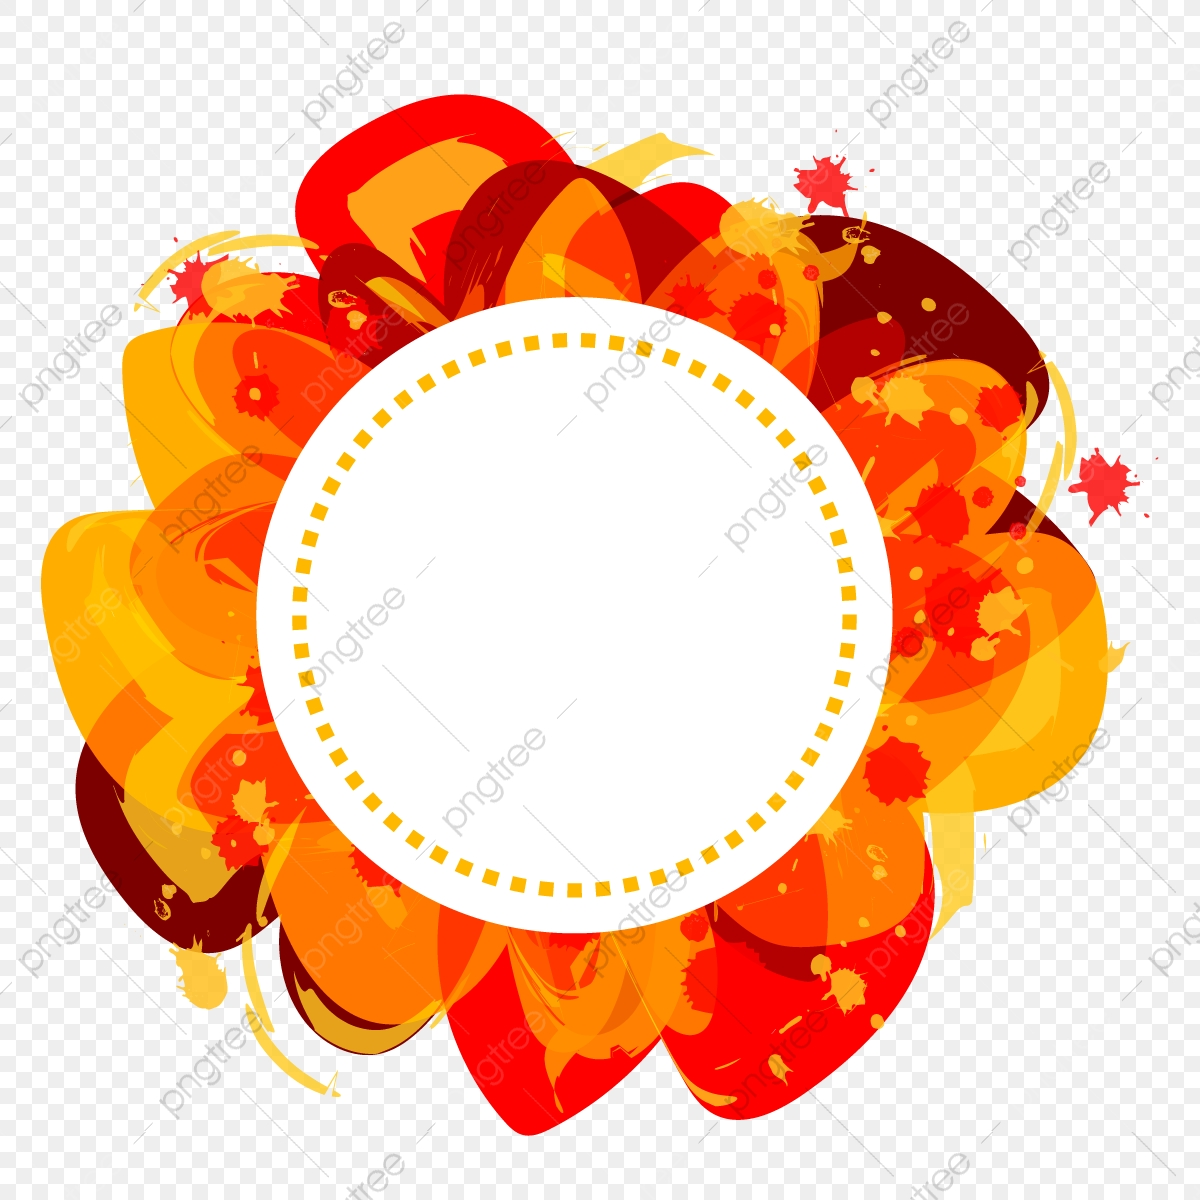 Round Border Png Images Vector And Psd Files Free Download On Pngtree